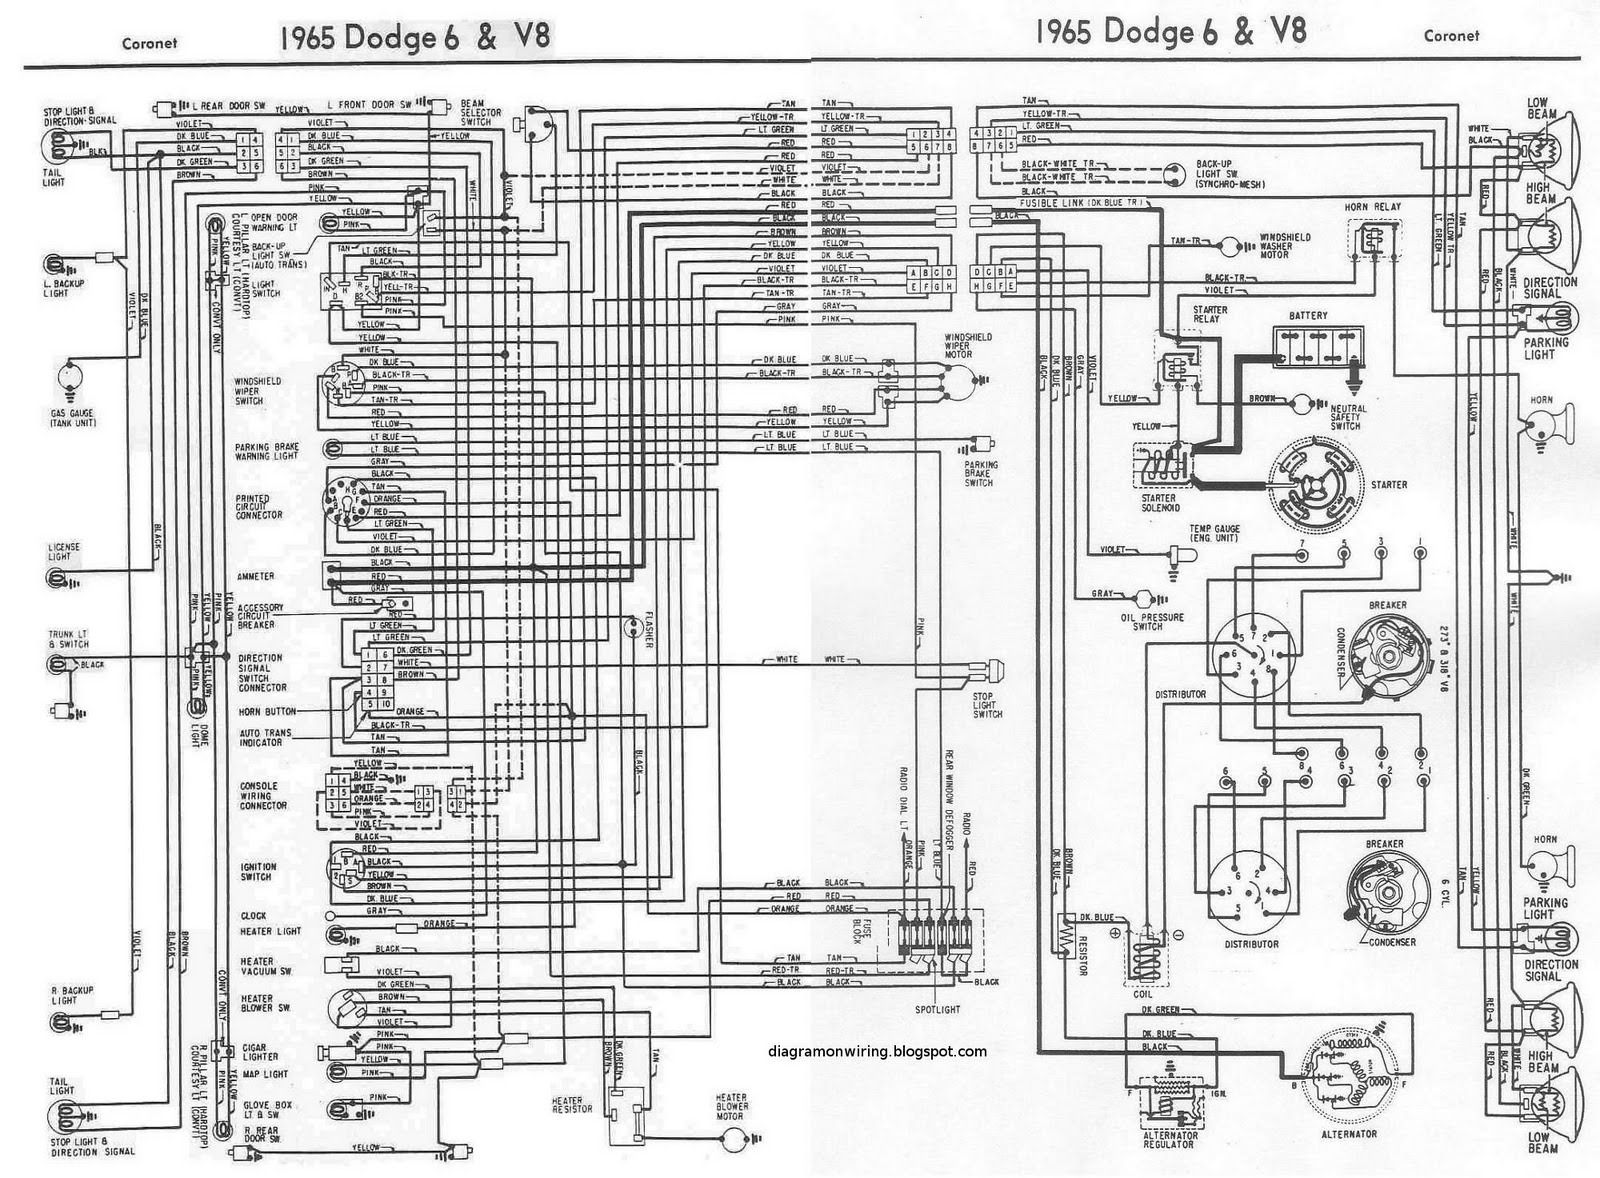 69 c10 fuse box wiring diagram 1966 gmc carry all 1972 chevy c10 fuse box diagram  1966 gmc carry all 1972 chevy c10